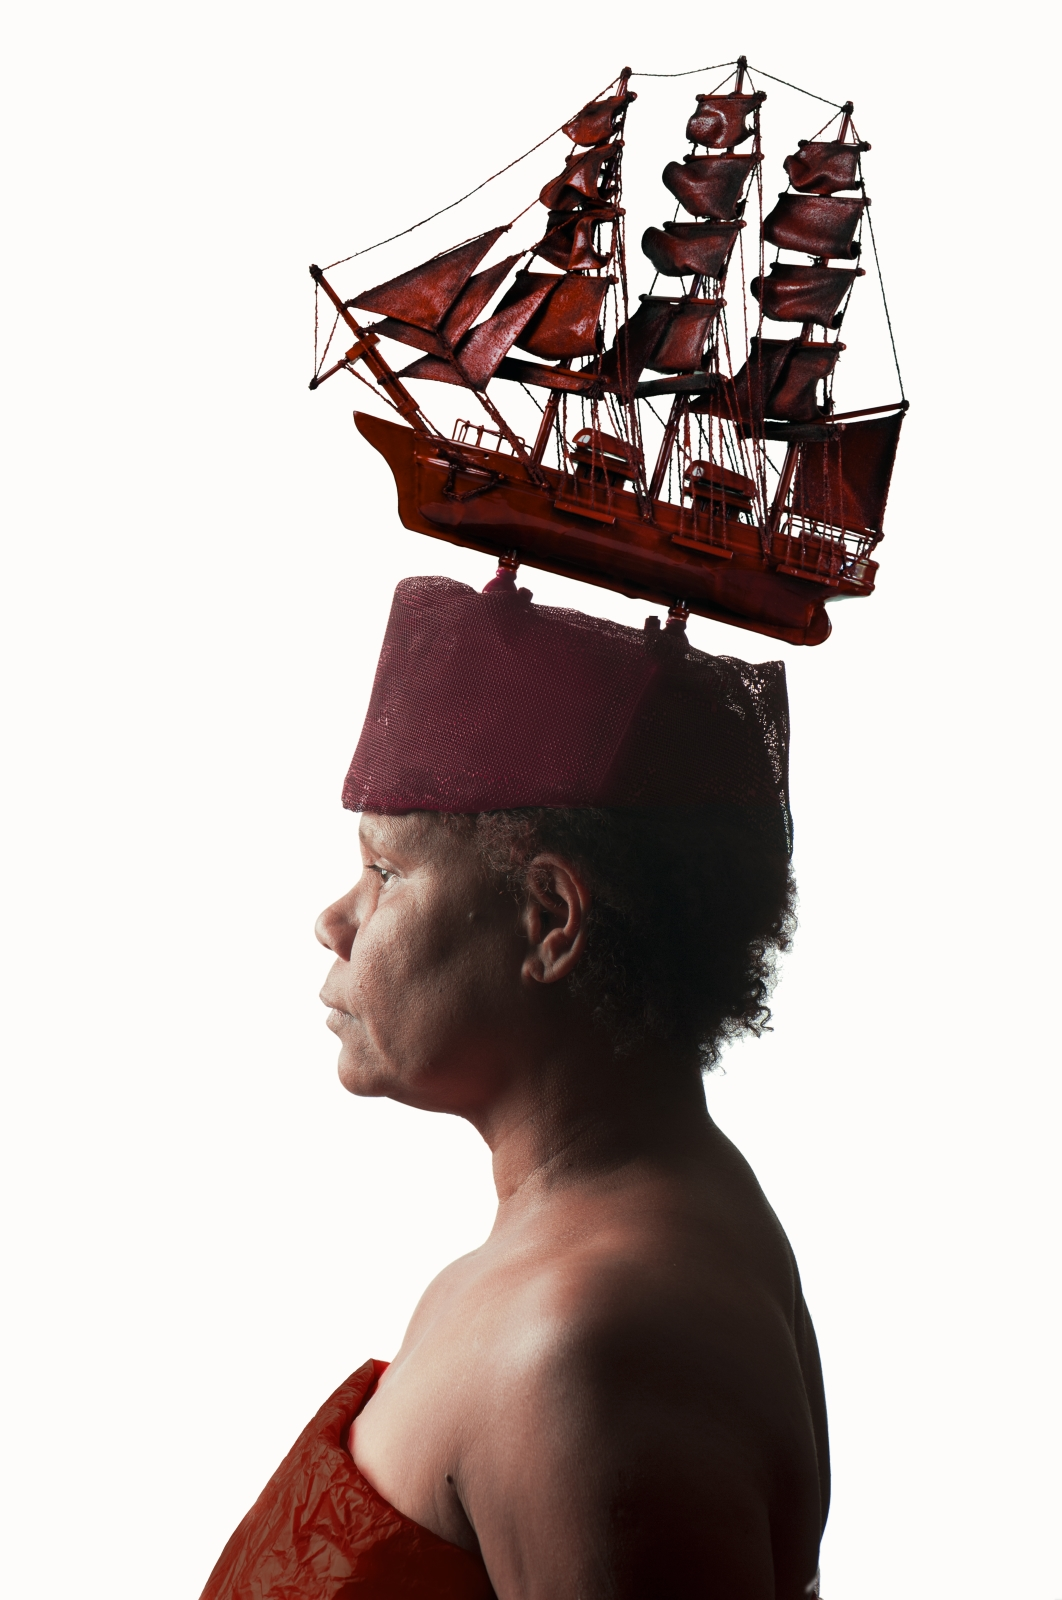 Ali Gumillya Baker,  Sovereign Fleet Red , 2013, archival print. Courtesy the artist.